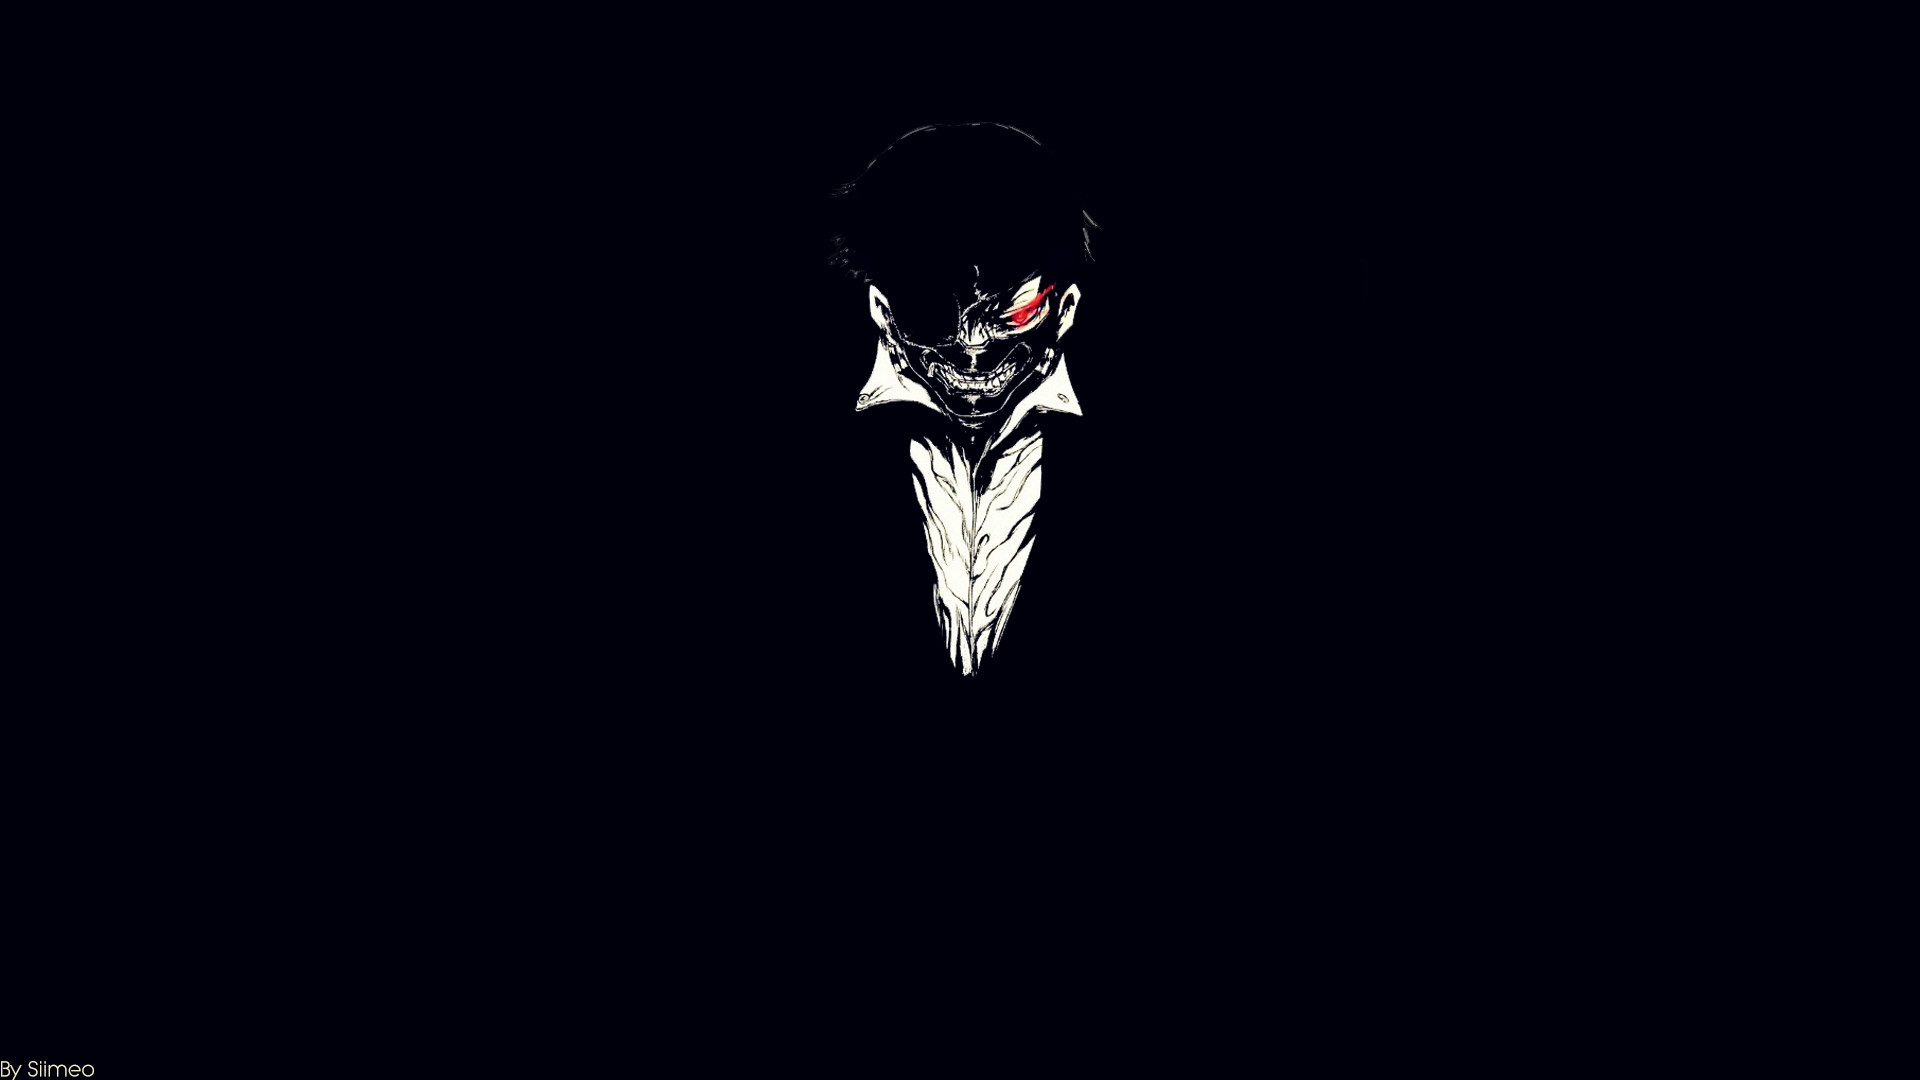 Tokyo Ghoul Subtle Wallpapers. by xHysteriaJan 14 2016. Load 21 more images  Grid view